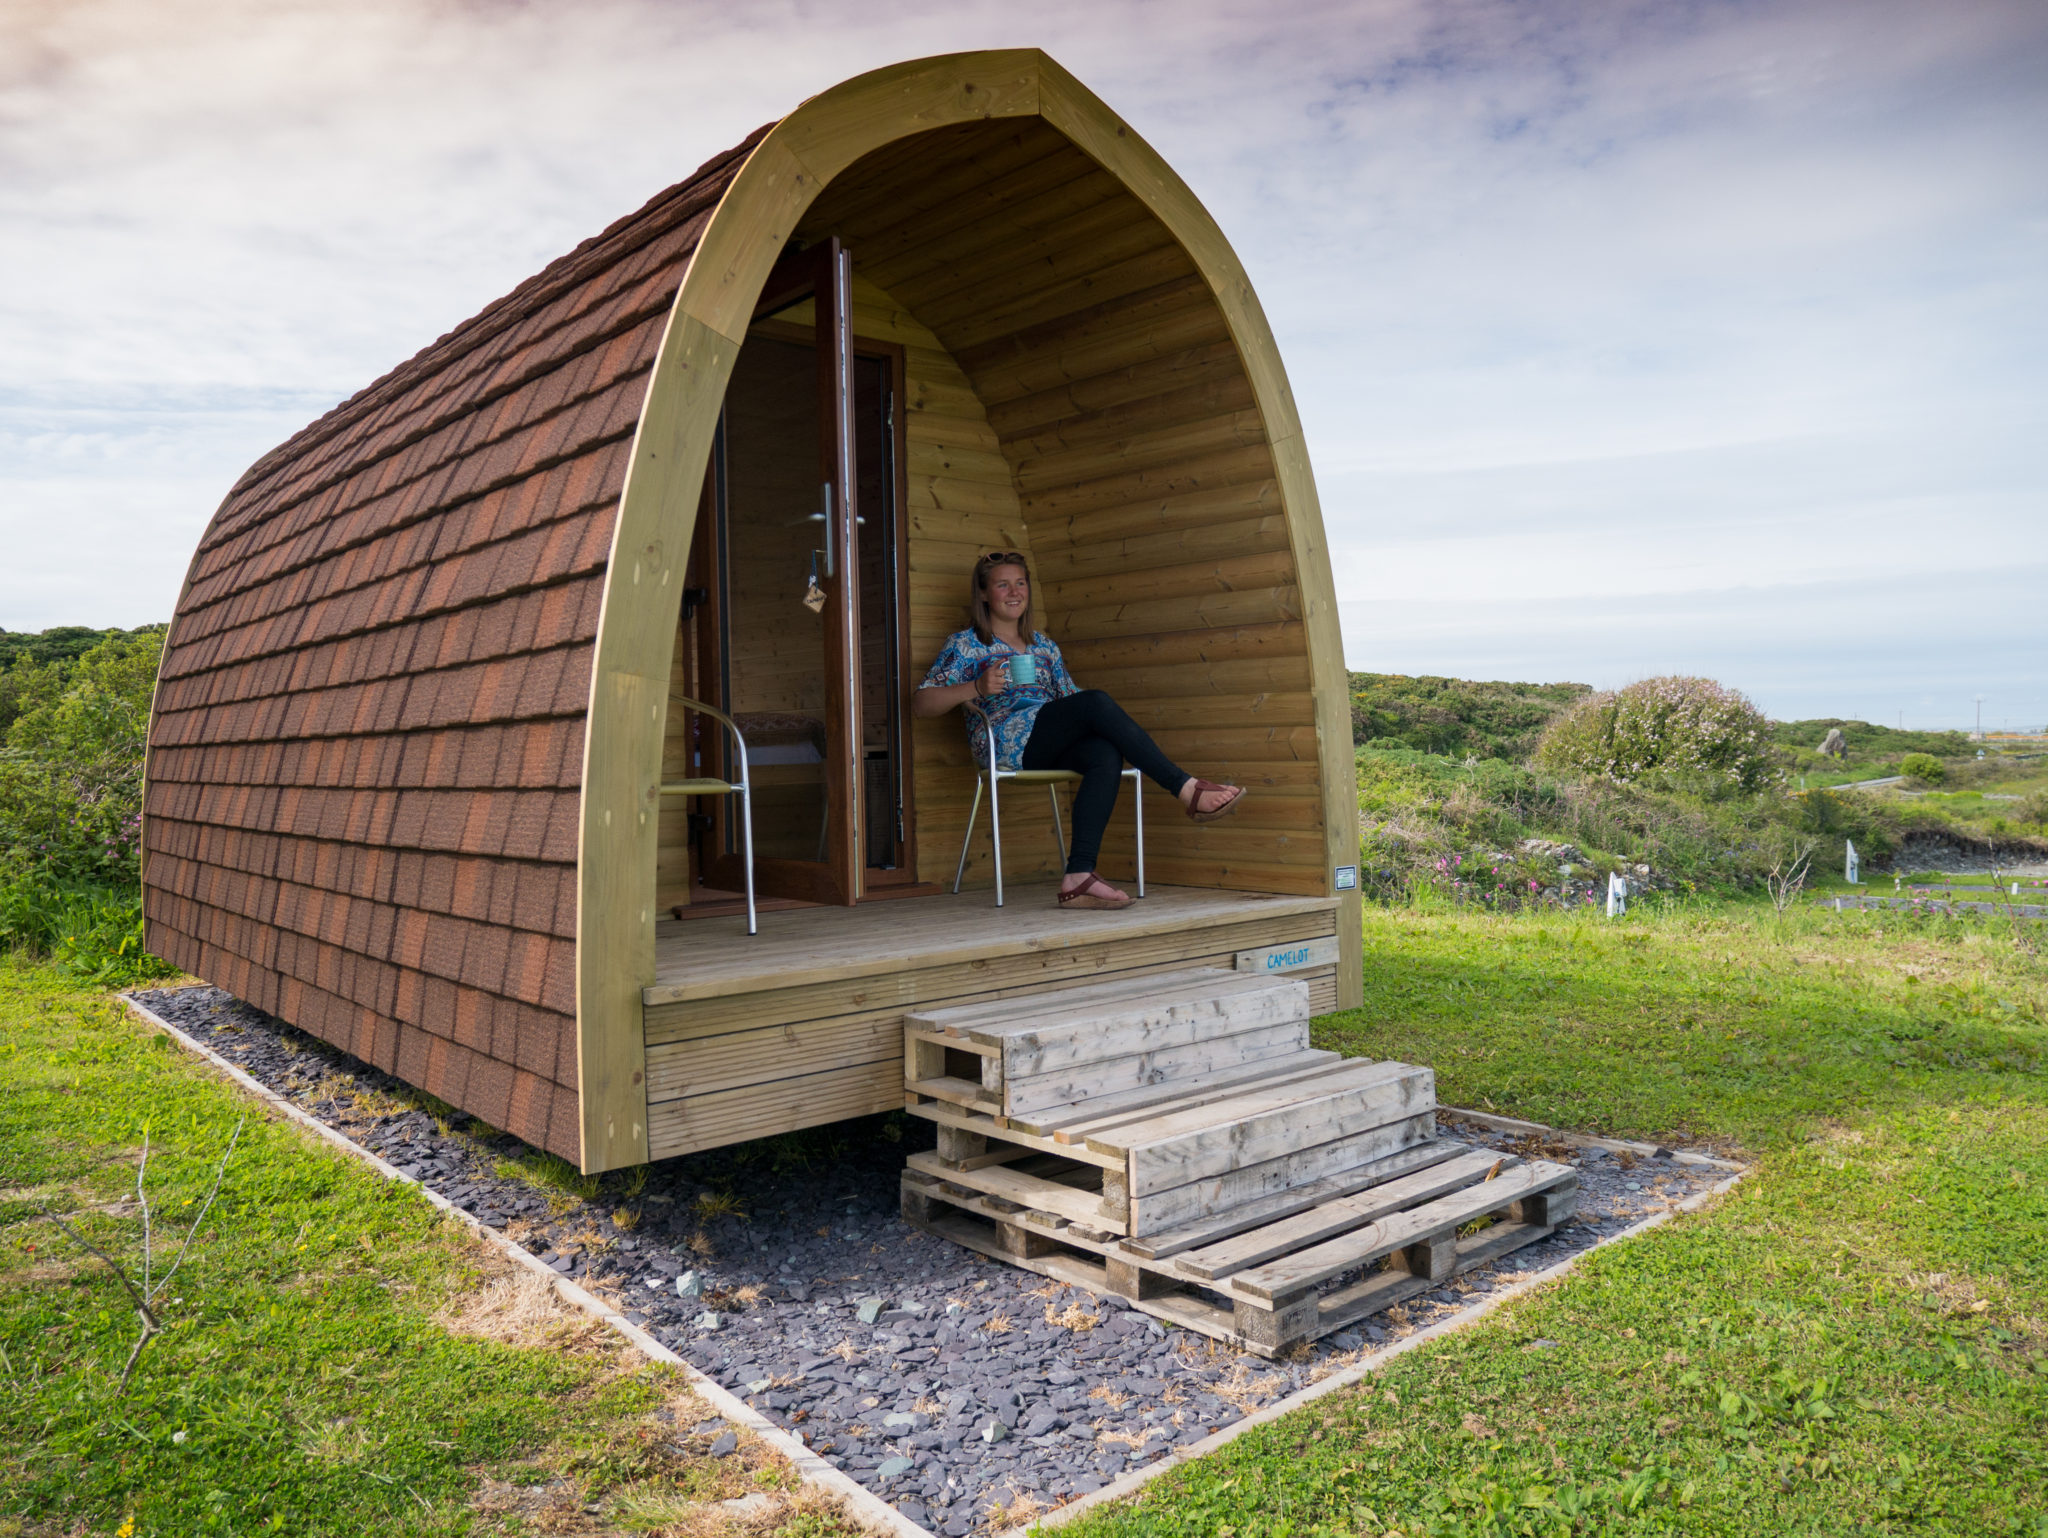 North Wales Glamping Pods in Anglesey: Camping on Holy Island